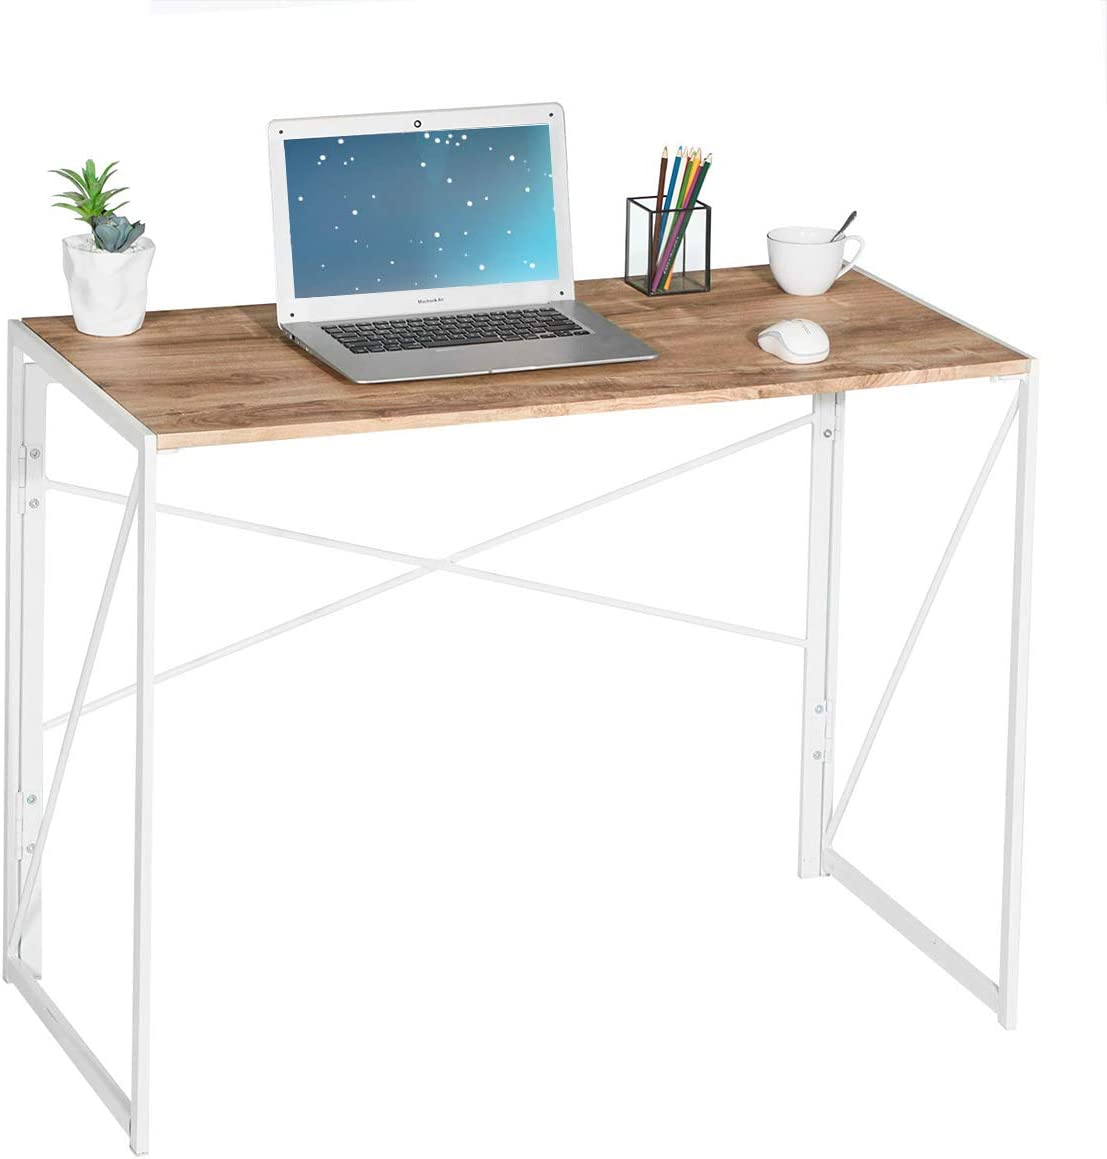 Folding Computer Desk Modern Writing Study Desk Industrial Simple Laptop Table for Home Office Notebook Desk, Oak White